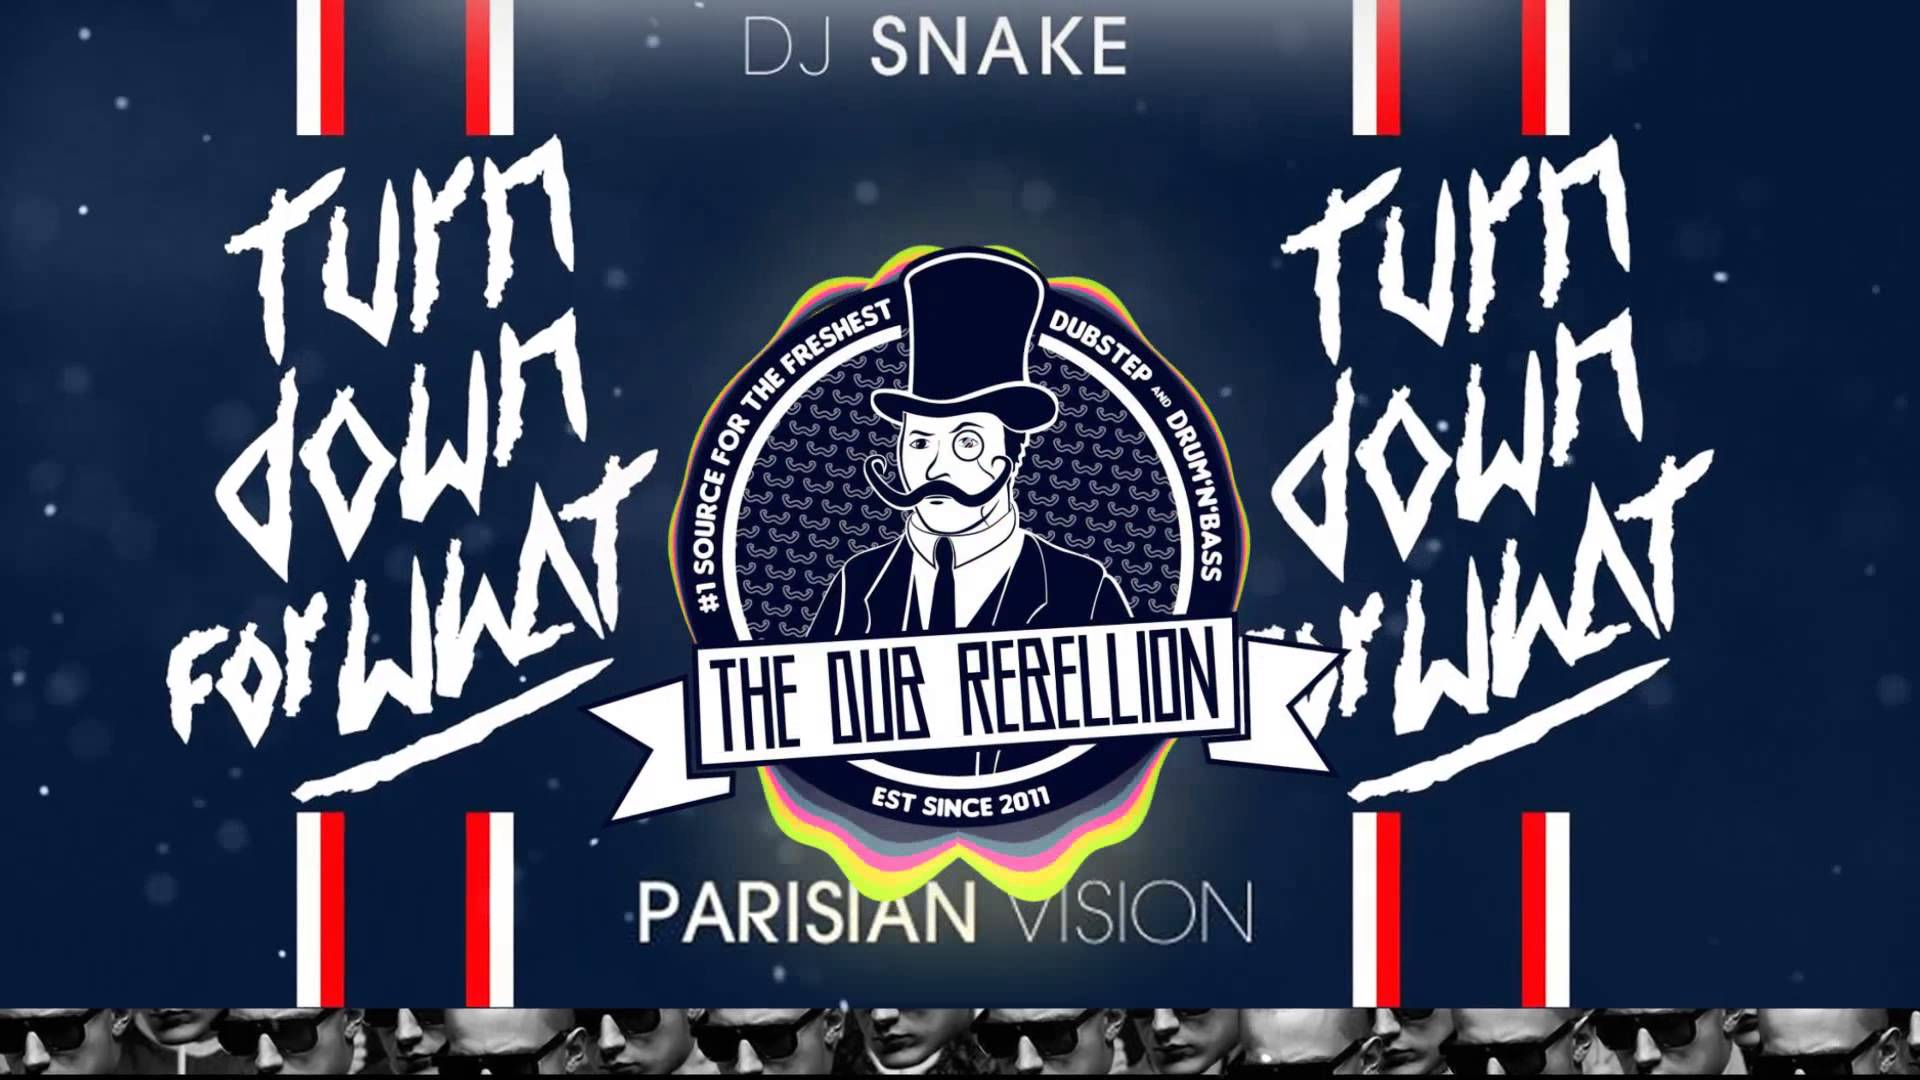 DJ Snake Wallpapers High Resolution and Quality Download 1920x1080